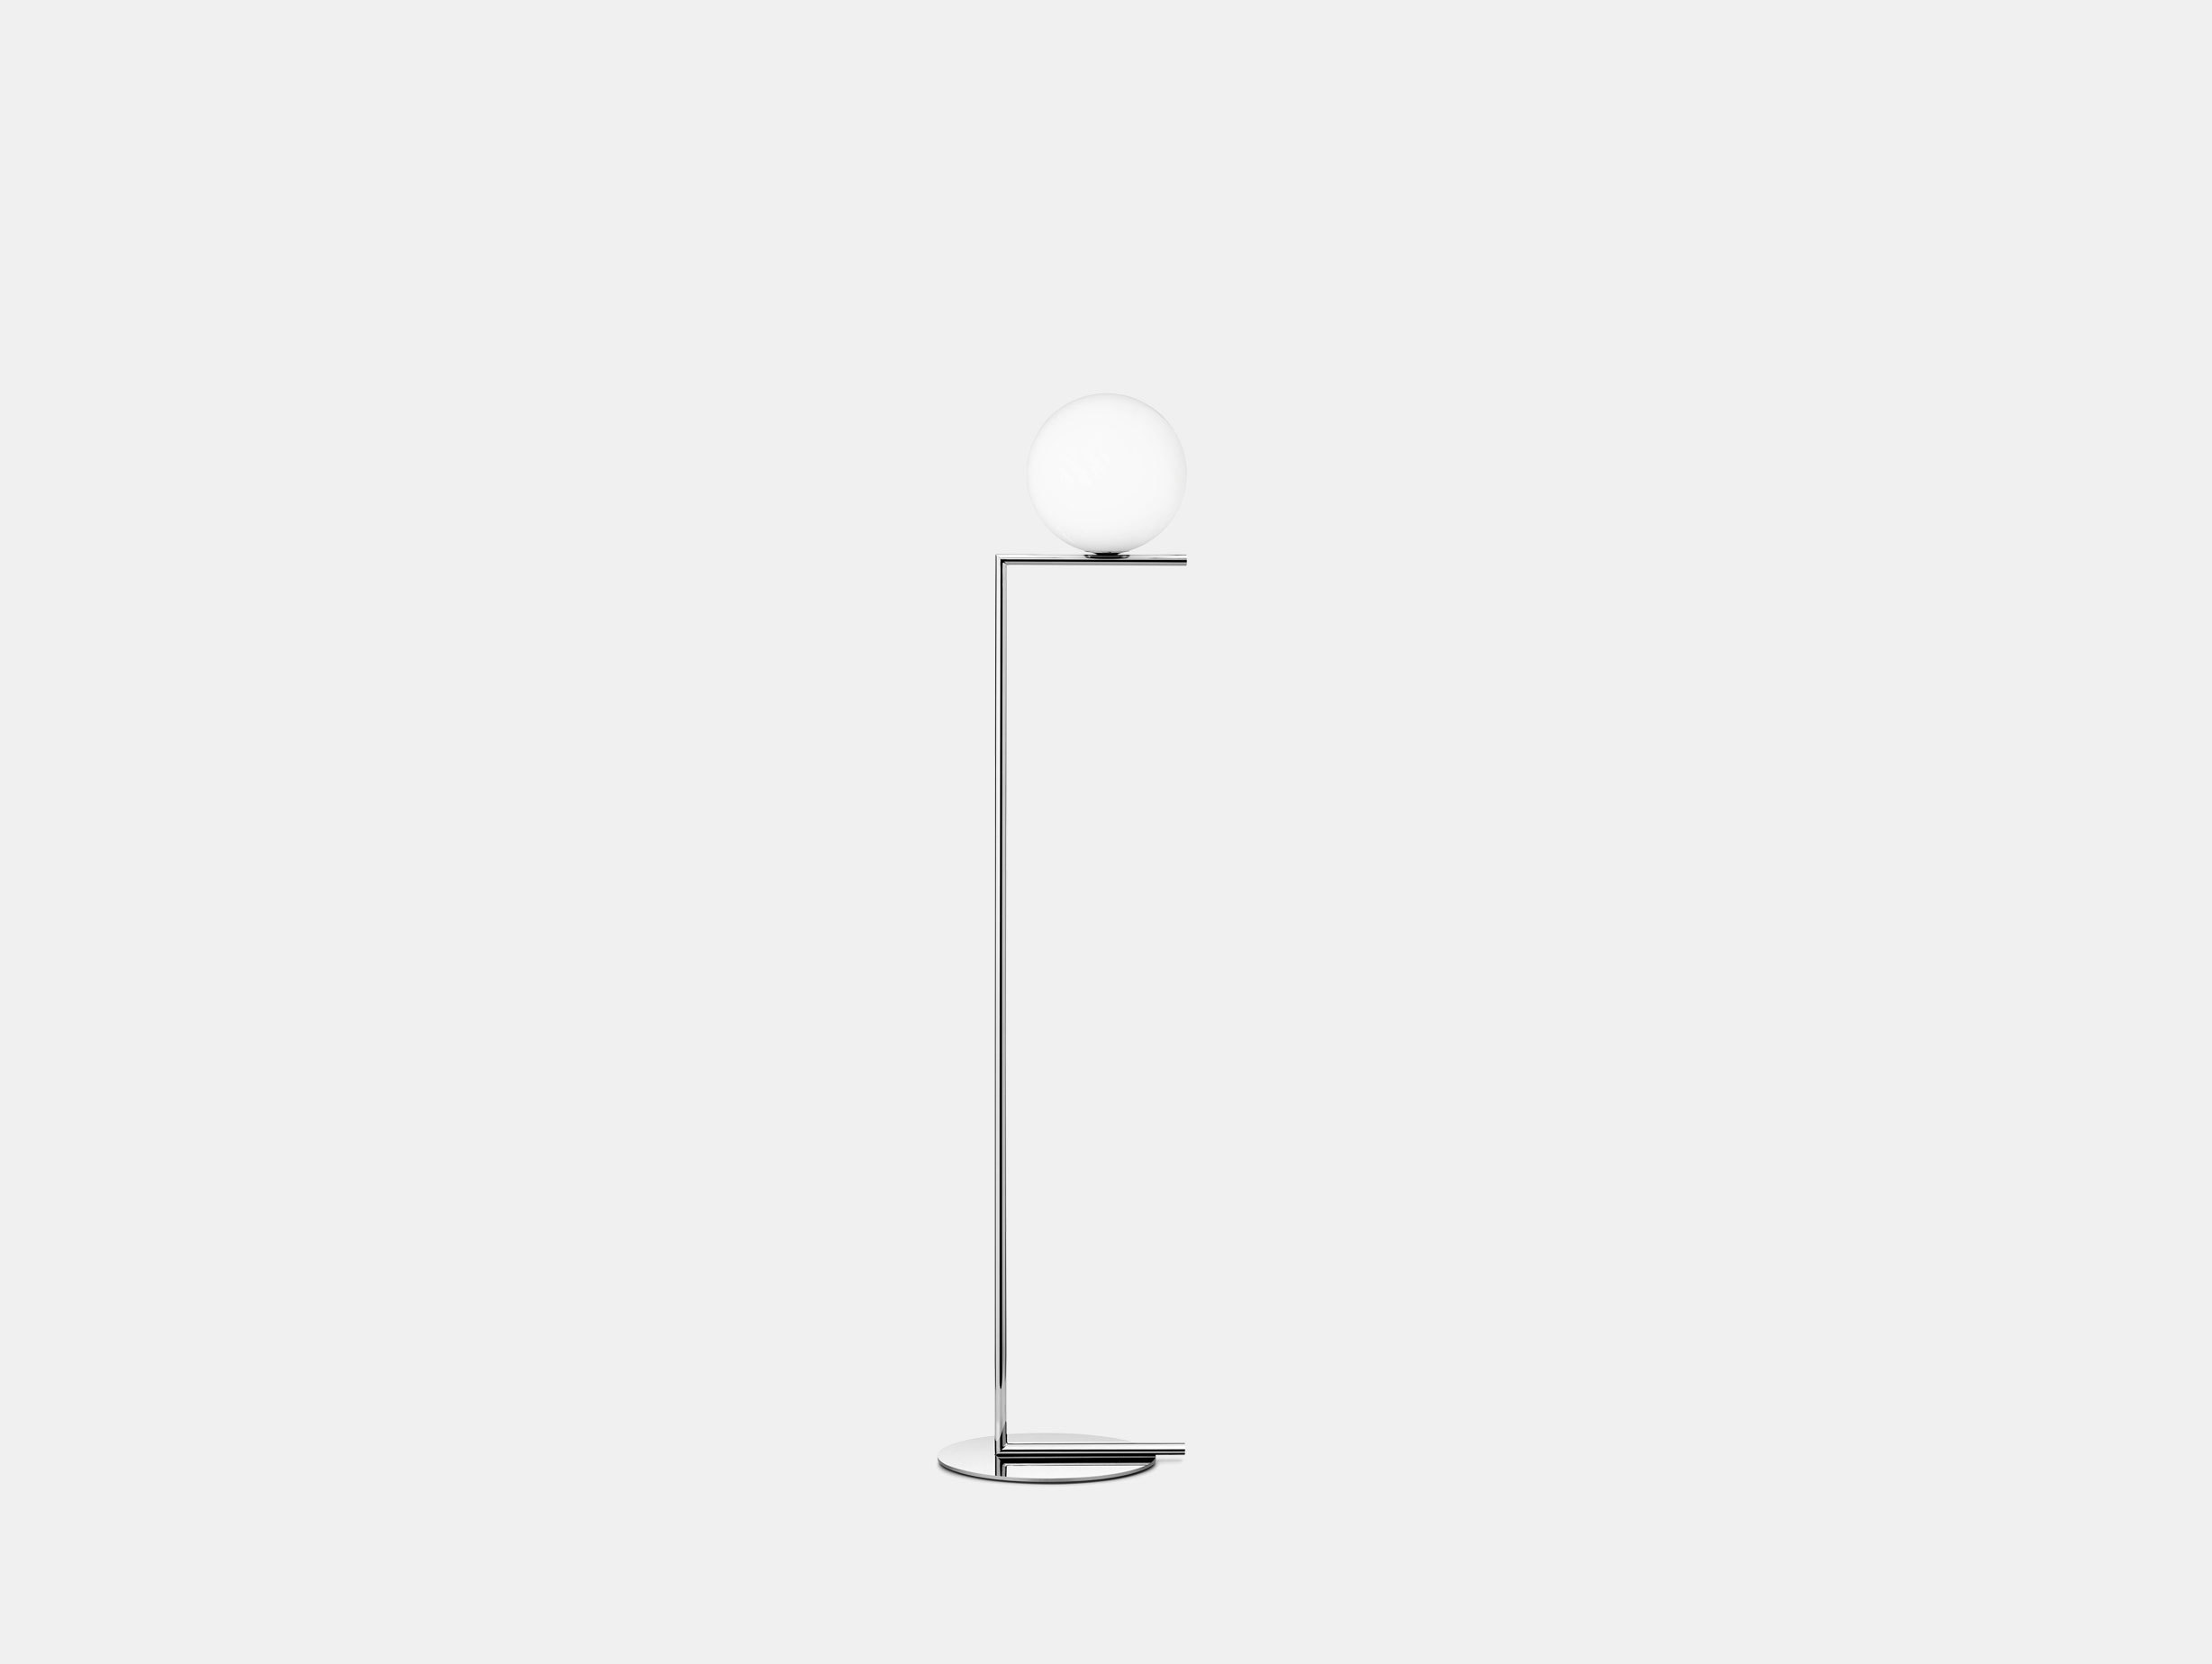 Ampoule Gx53 Led Leroy Merlin Flos Table Lamp Ic